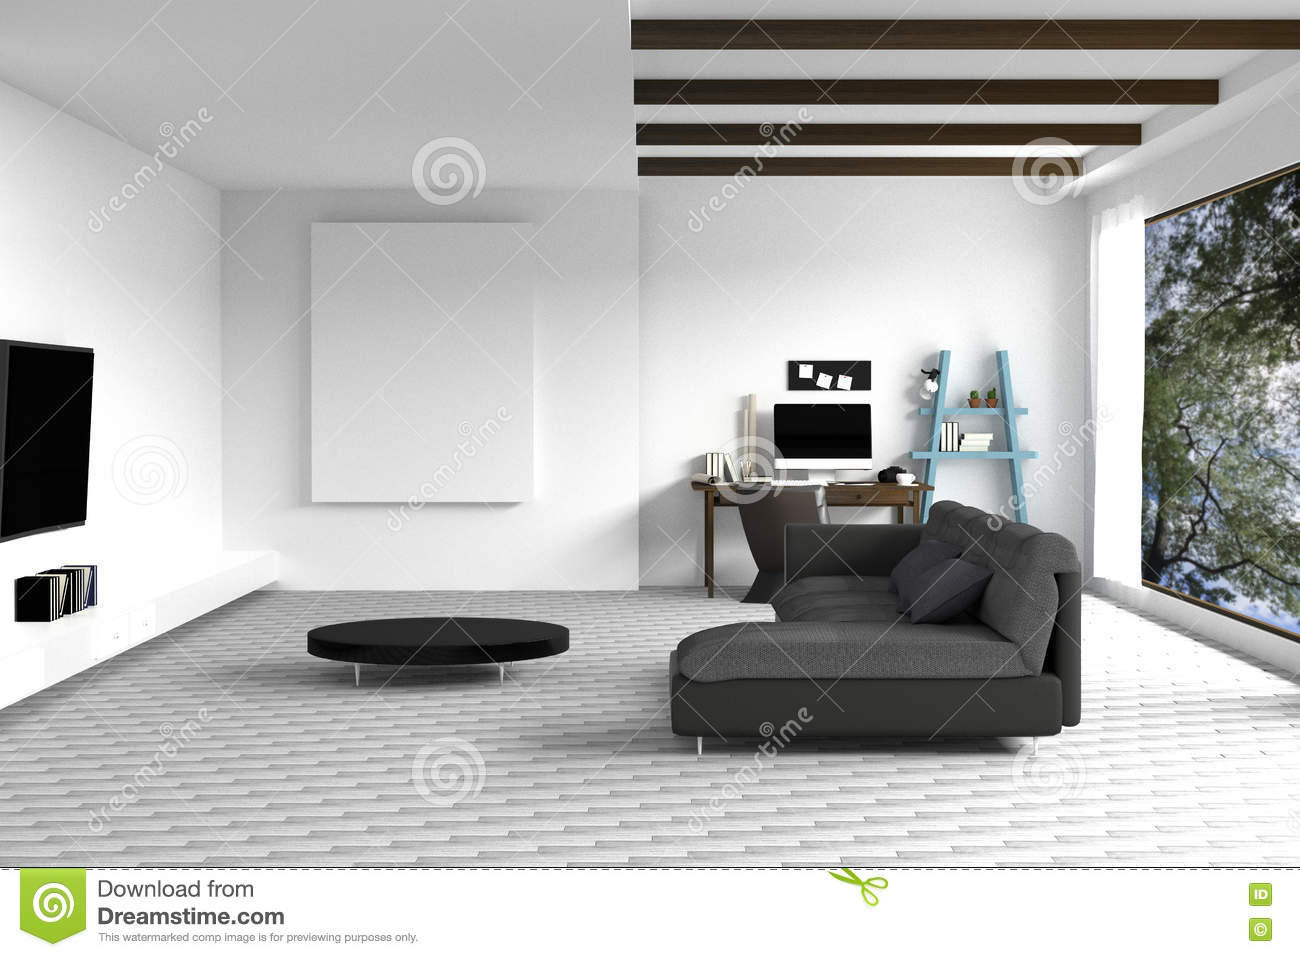 3D Rendering : Illustration Of White Living Room Interior Design With Dark  Sofa.blank Picture Frames.shelves And White Walls.